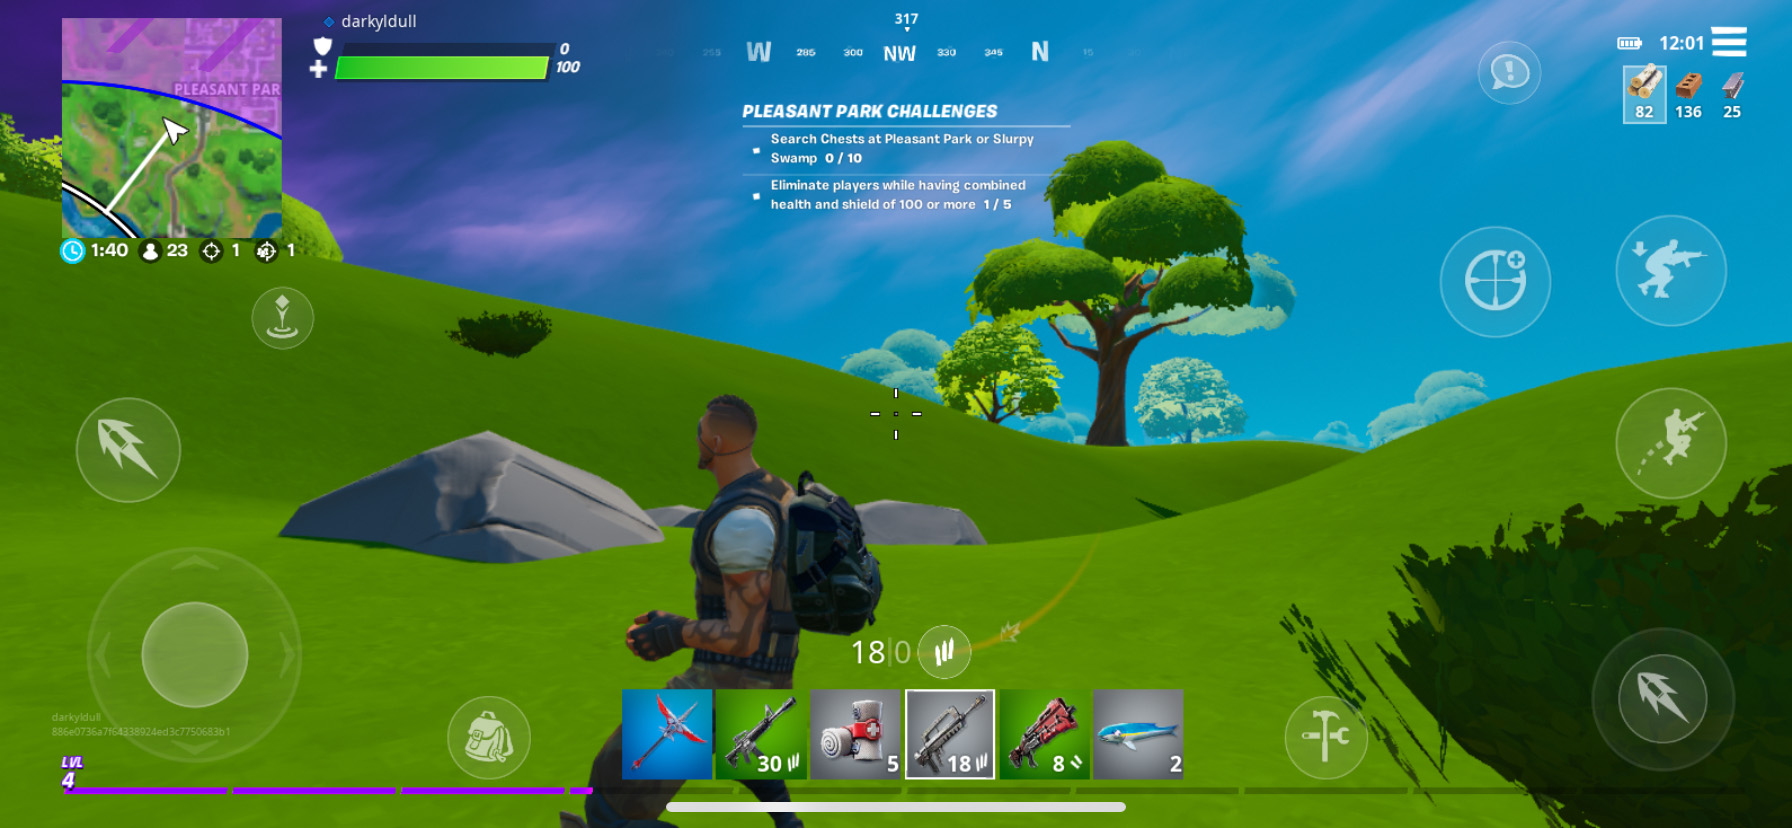 Fortnite for Android - The Best Beginner Tips for Epic Games' Battle Royale